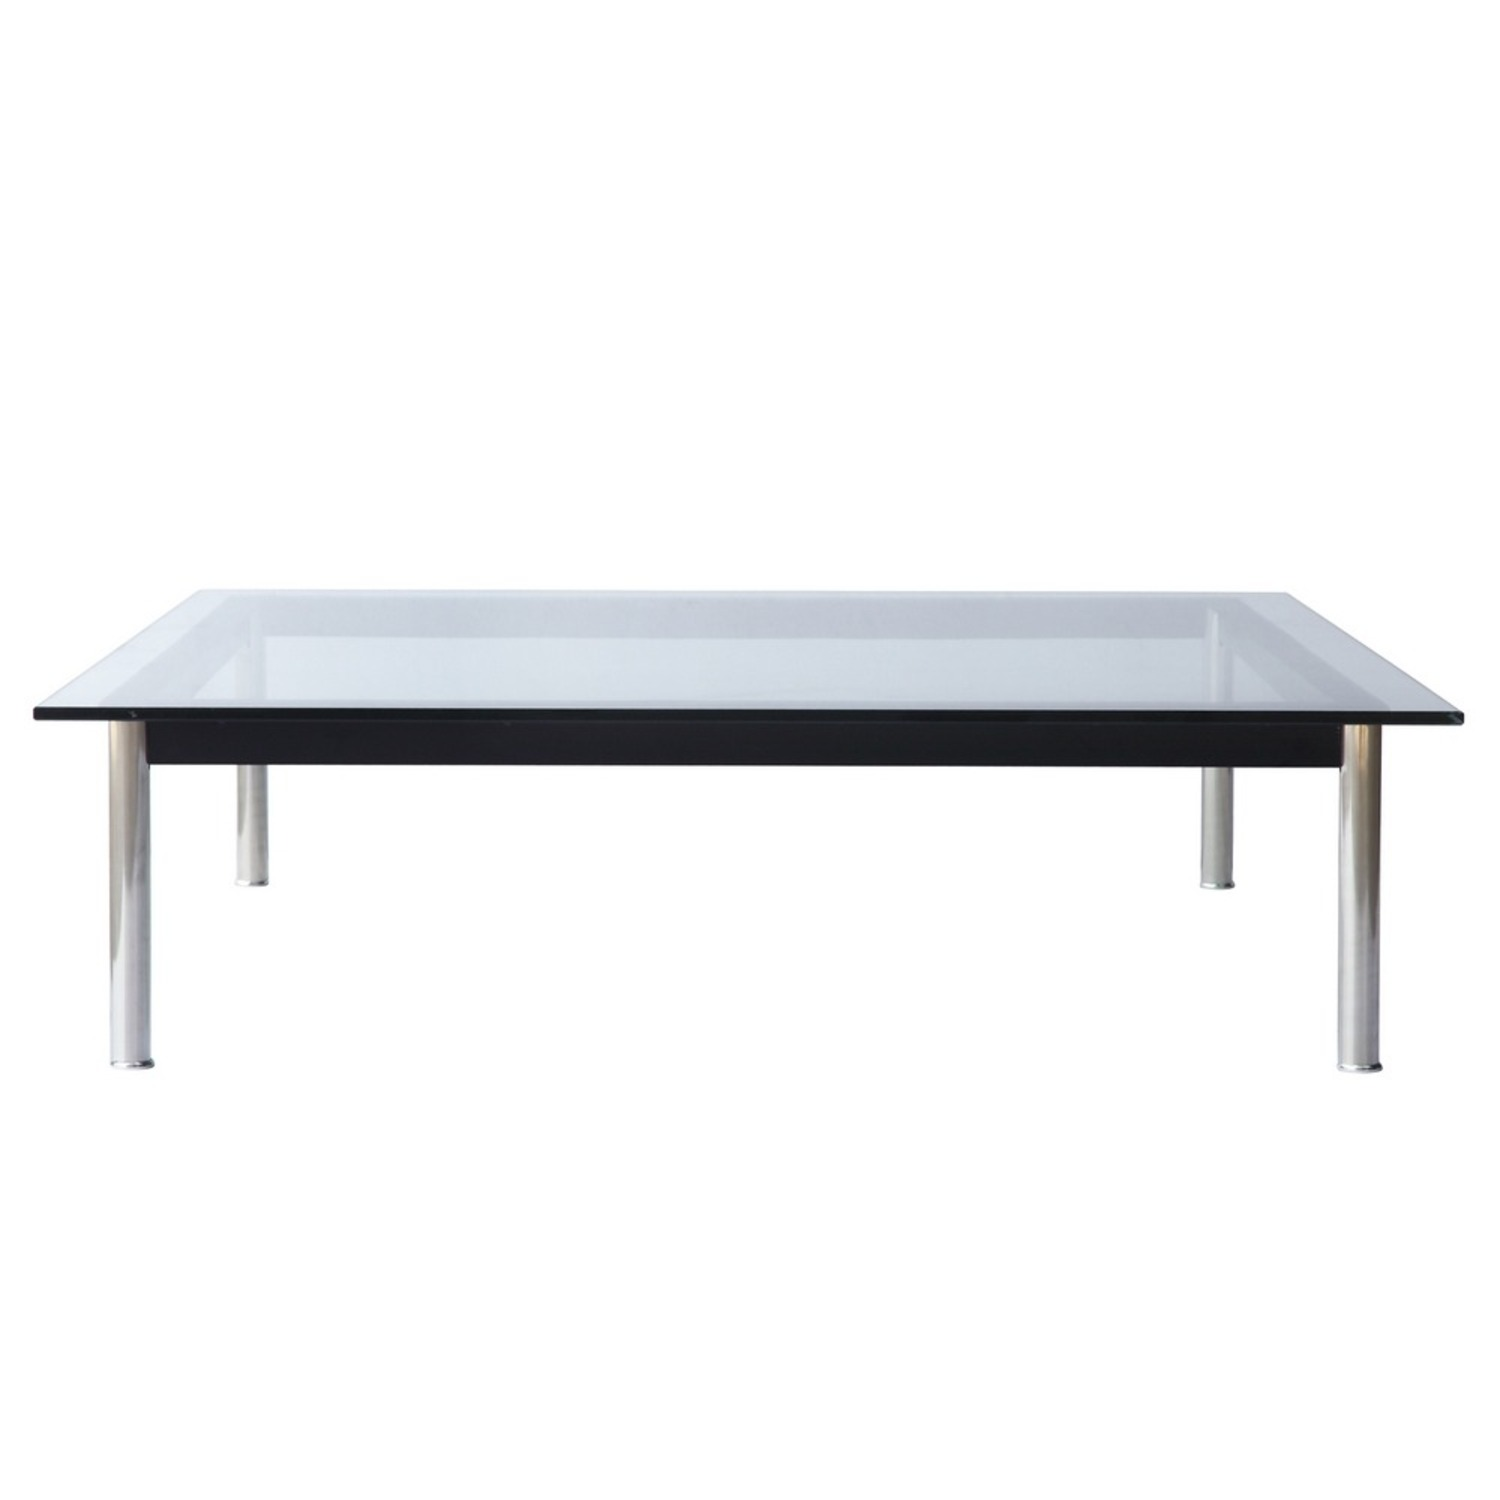 Coffee Table In Clear Chrome Finish W/ Glass Top - image-3